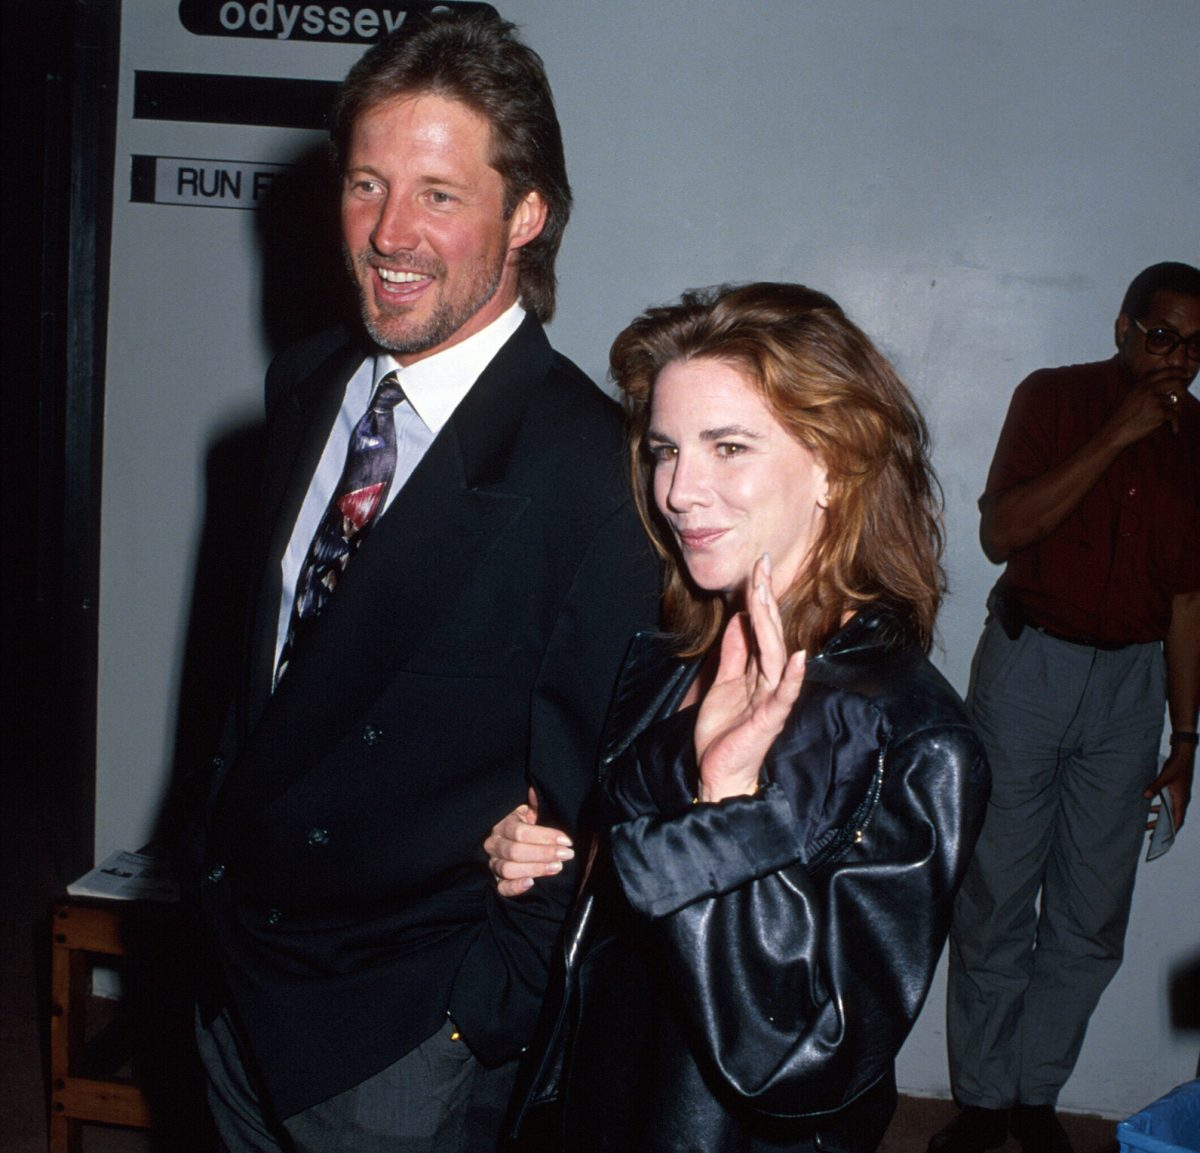 Bruce Boxleitner and Melissa Gilbert holding hands out in public. Gilbert is waving to someone to the left of the camera.